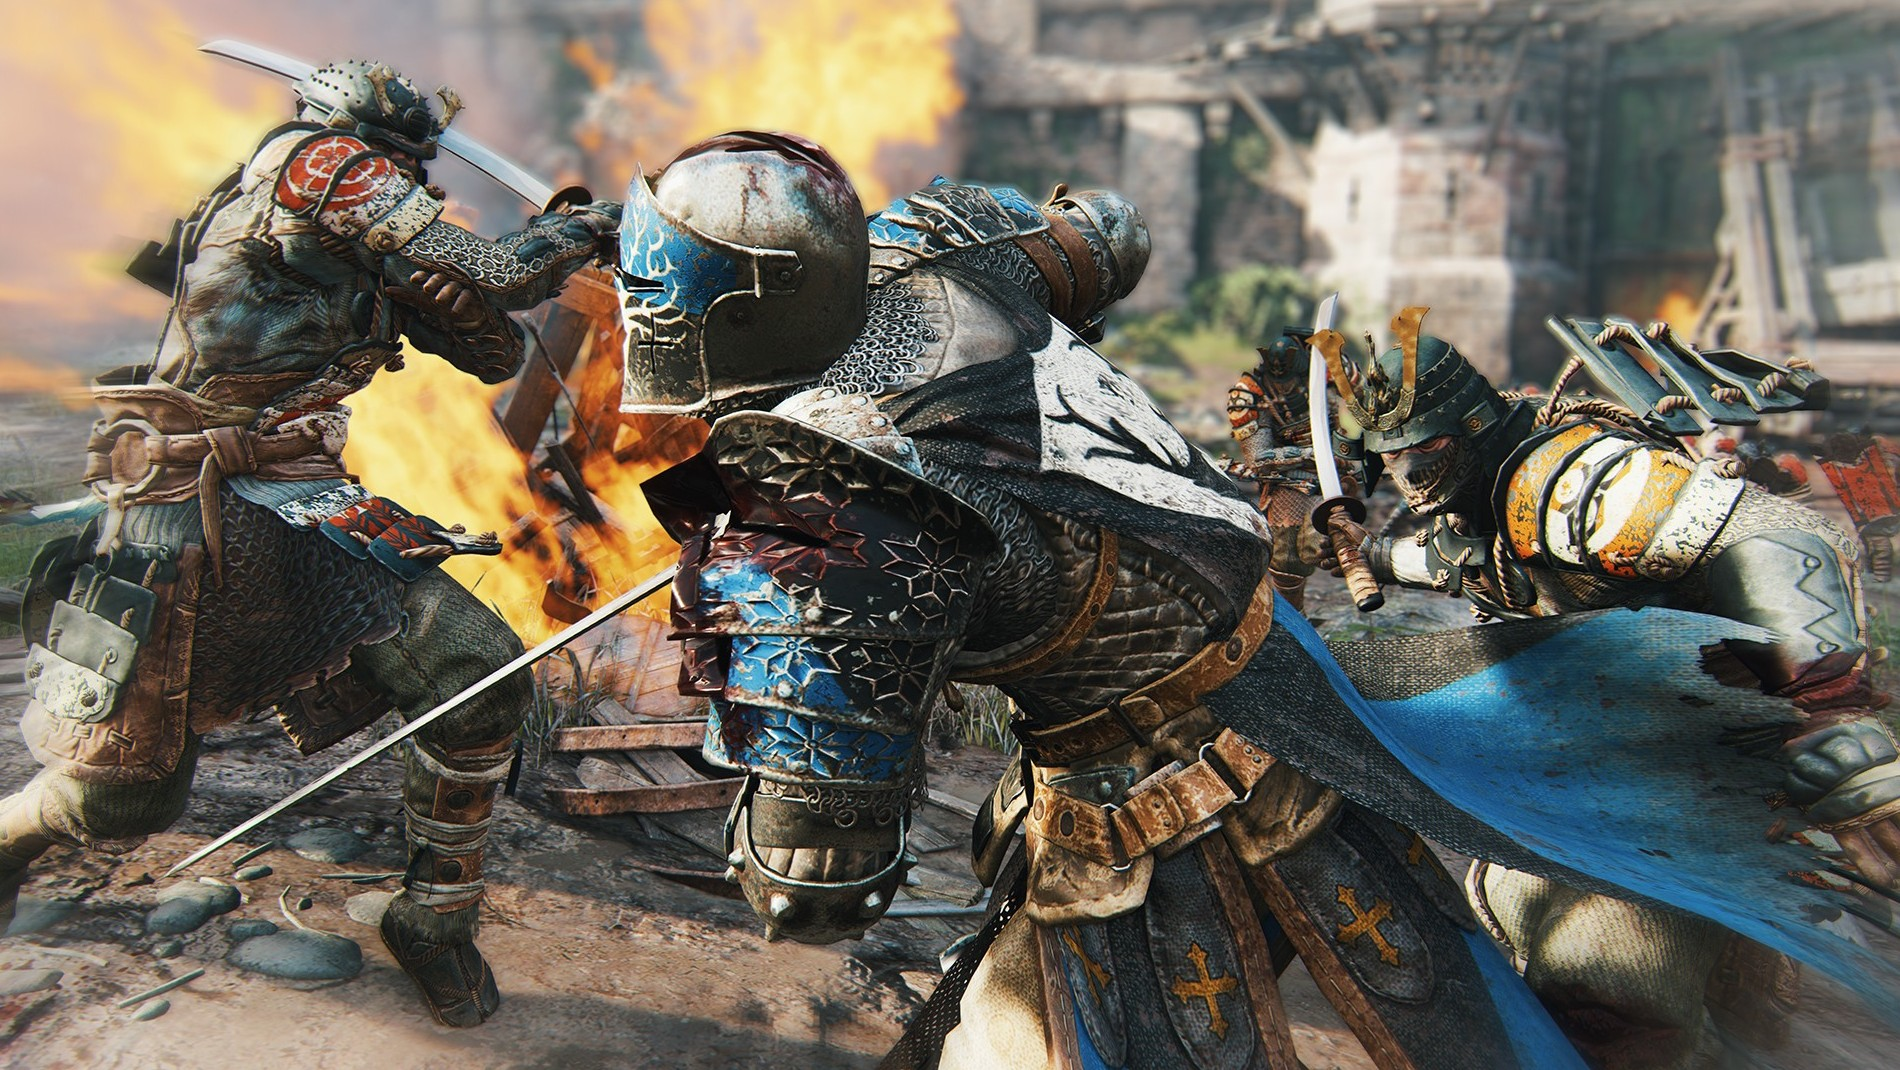 5. For Honor